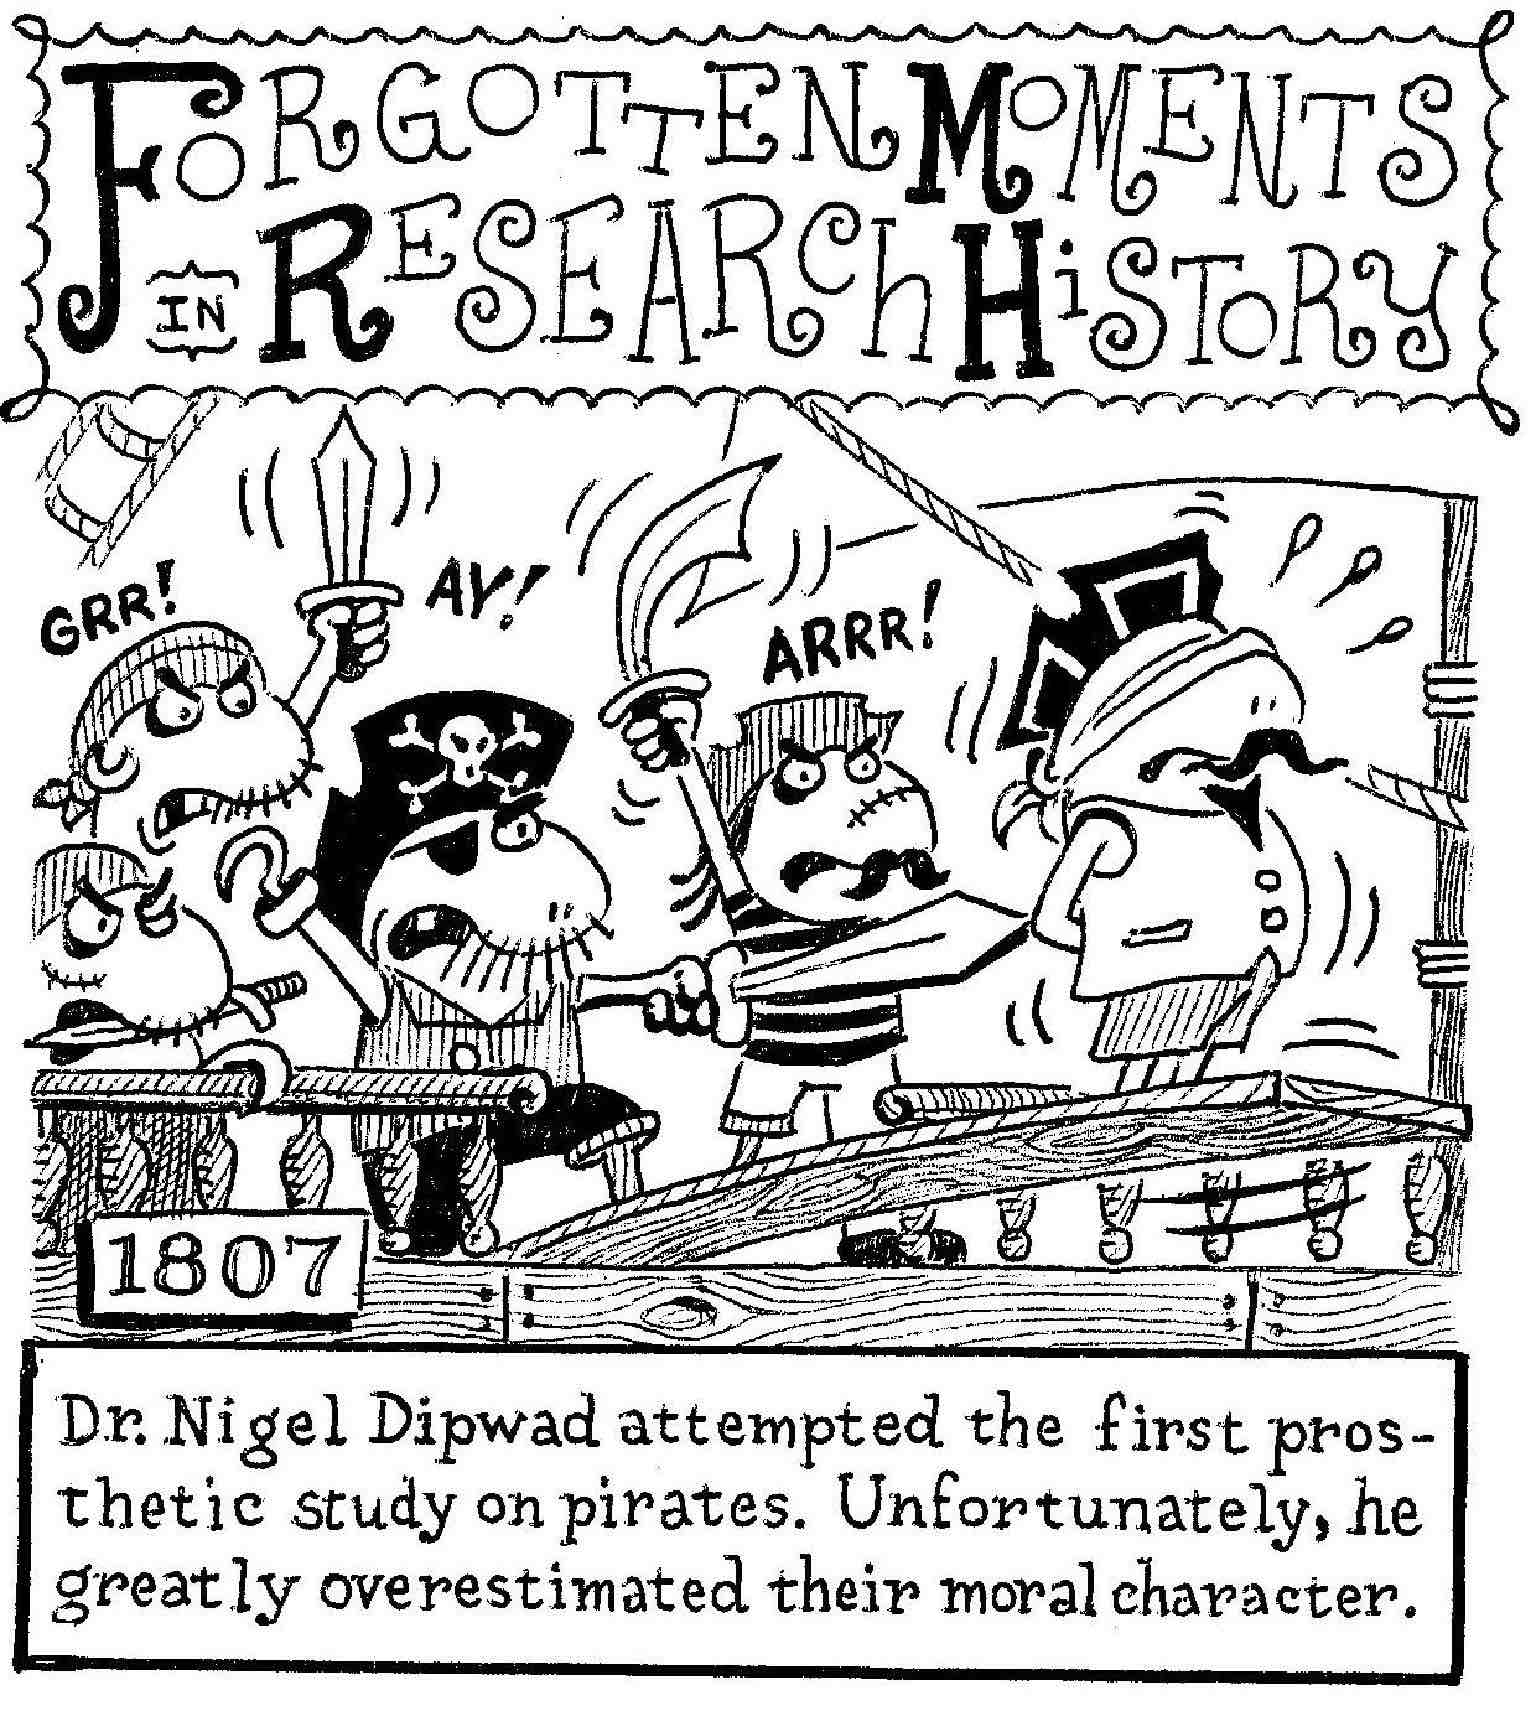 A funny cartoon about pirates forcing a researcher to walk the plank at swordpoint